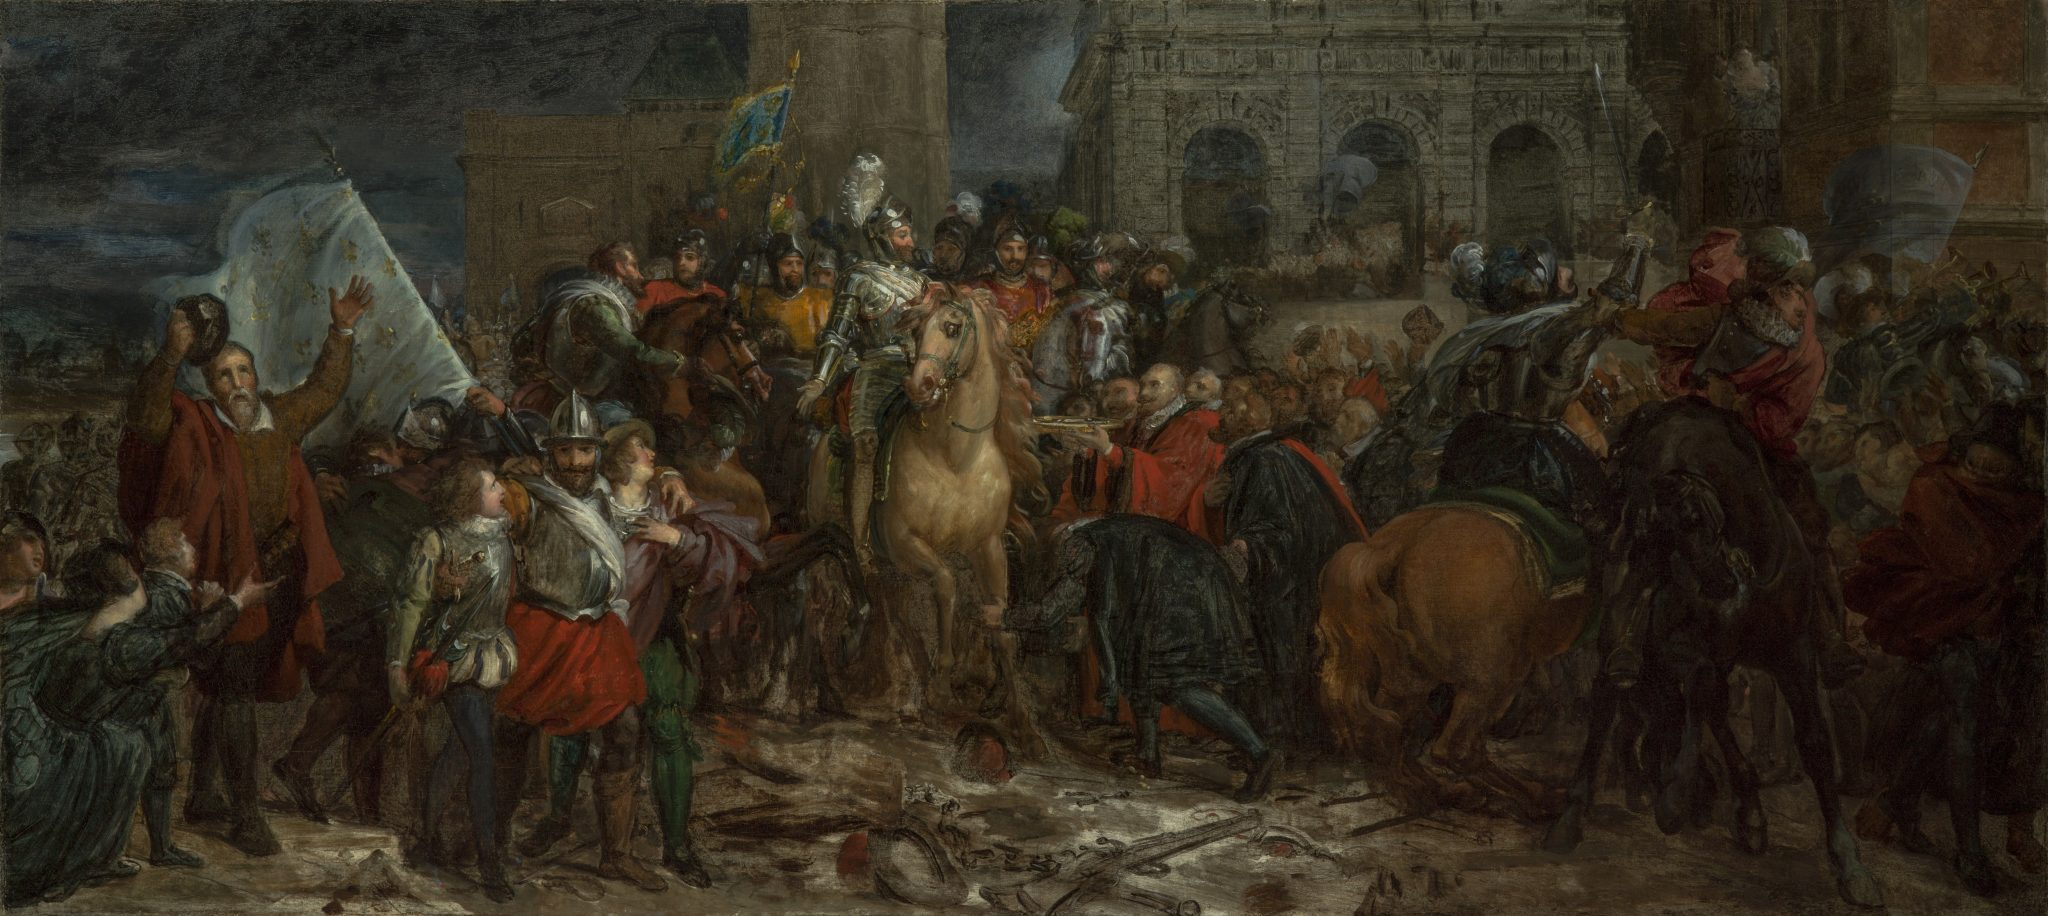 Gérard, Baron François ~ L'entrée d'Henri IV dans Paris, 22 mars 1594, (The entry of Henri IV into Paris, 22 March 1594)